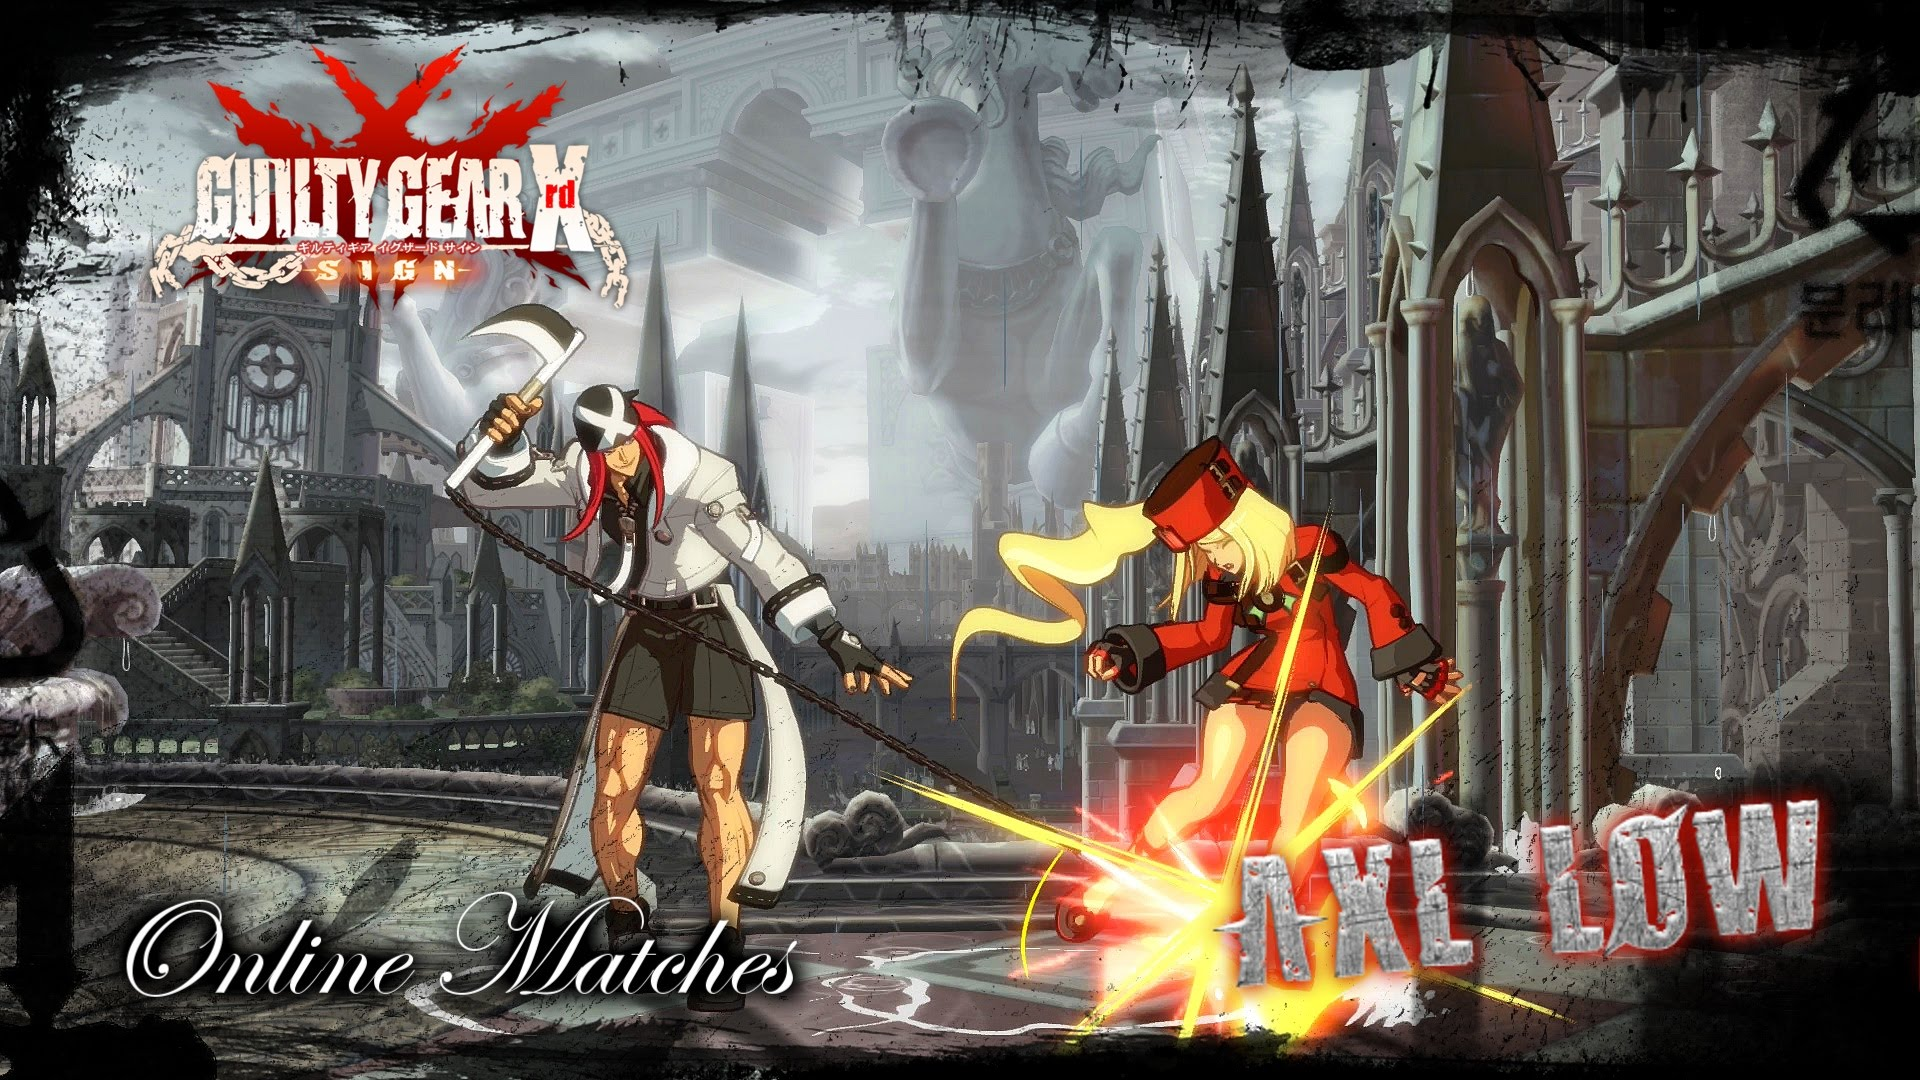 Guilty Gear: Axl Low Widescreen for desktop